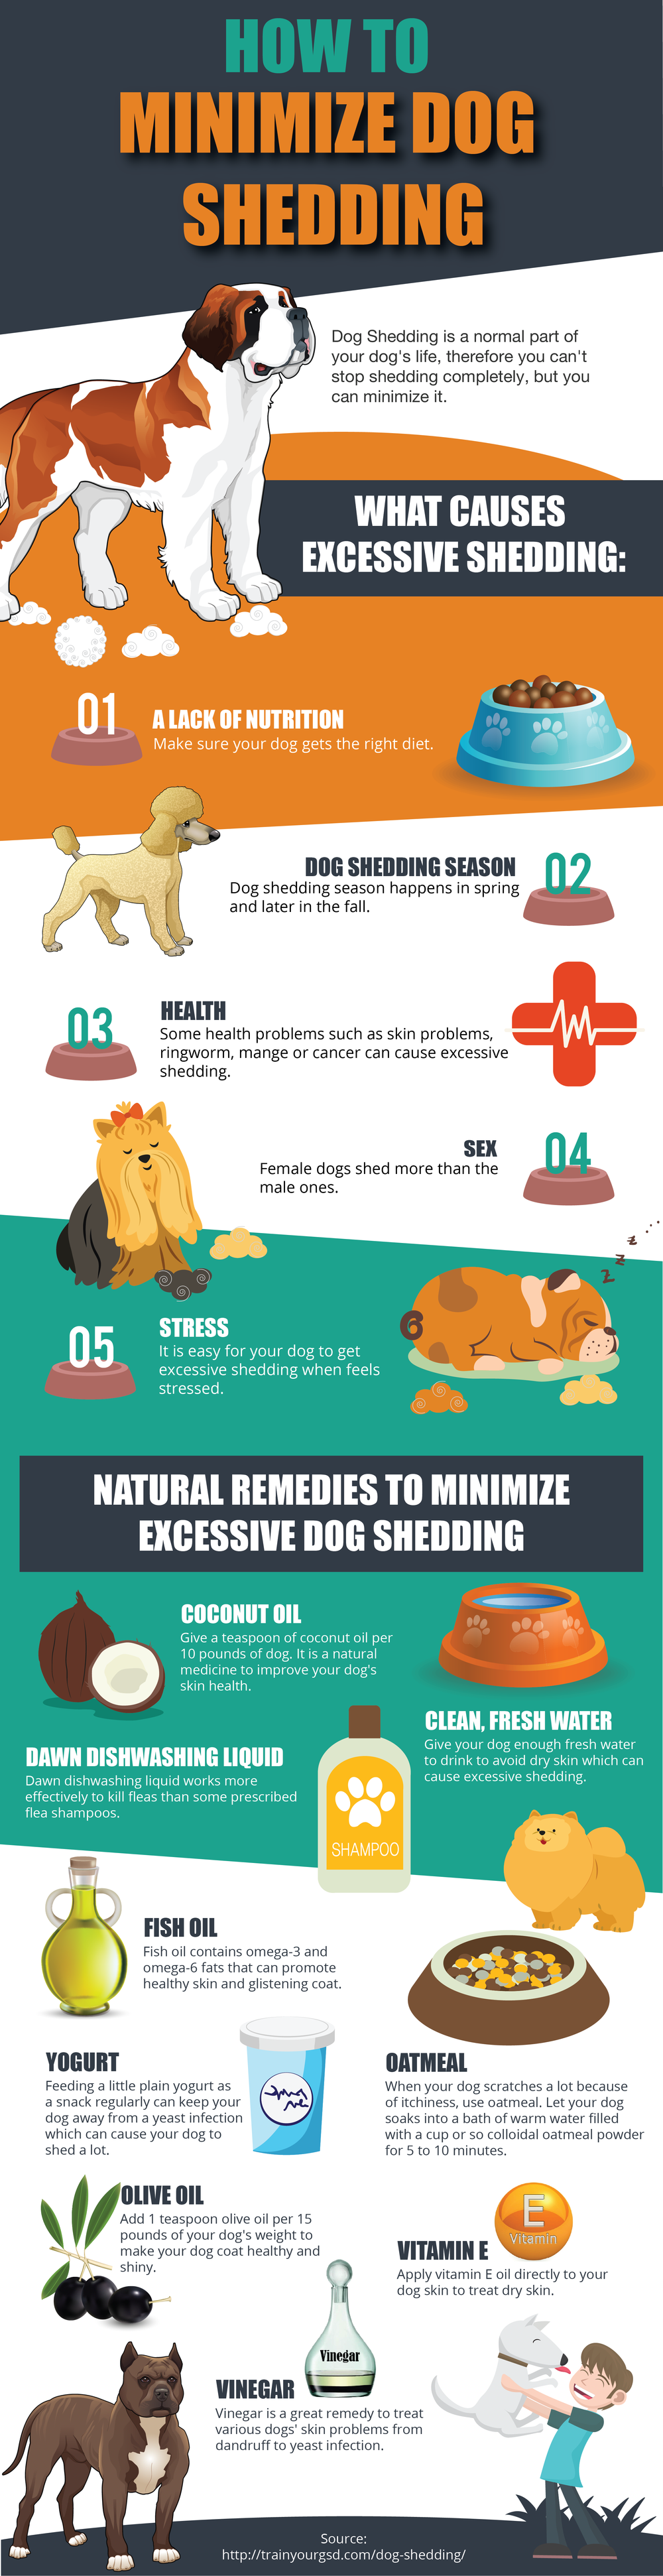 How_to_Minimize_Dog_Shedding01 (2).png